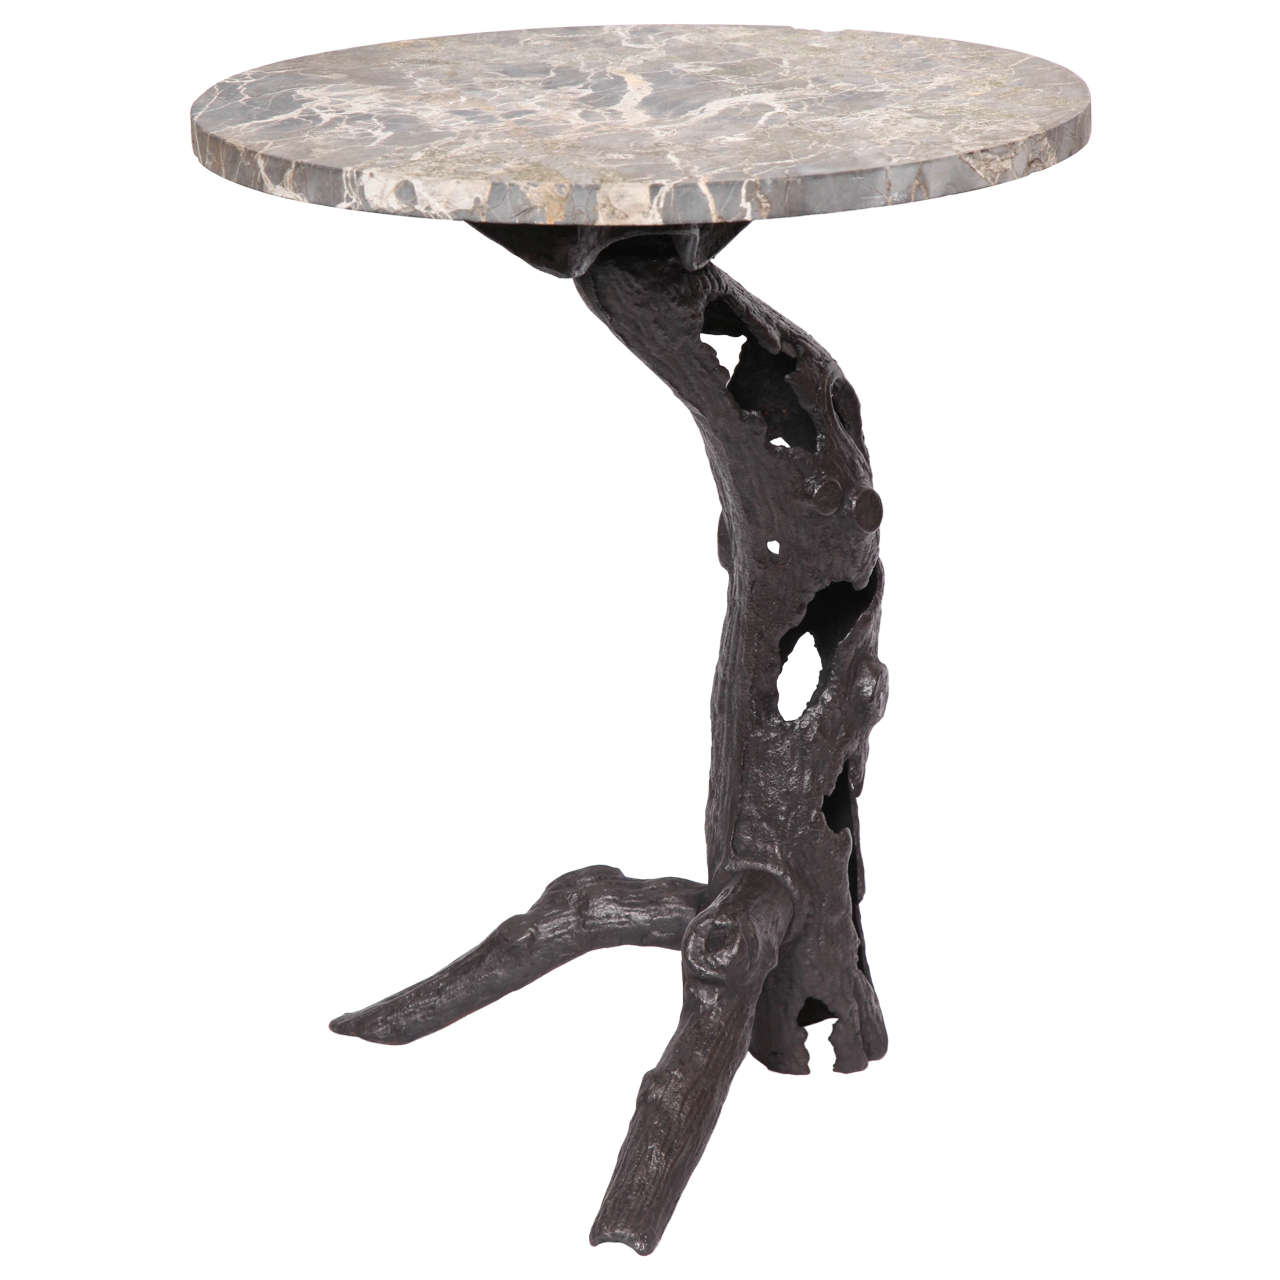 1920s Sculptural Patinated Iron and Marble Table For Sale